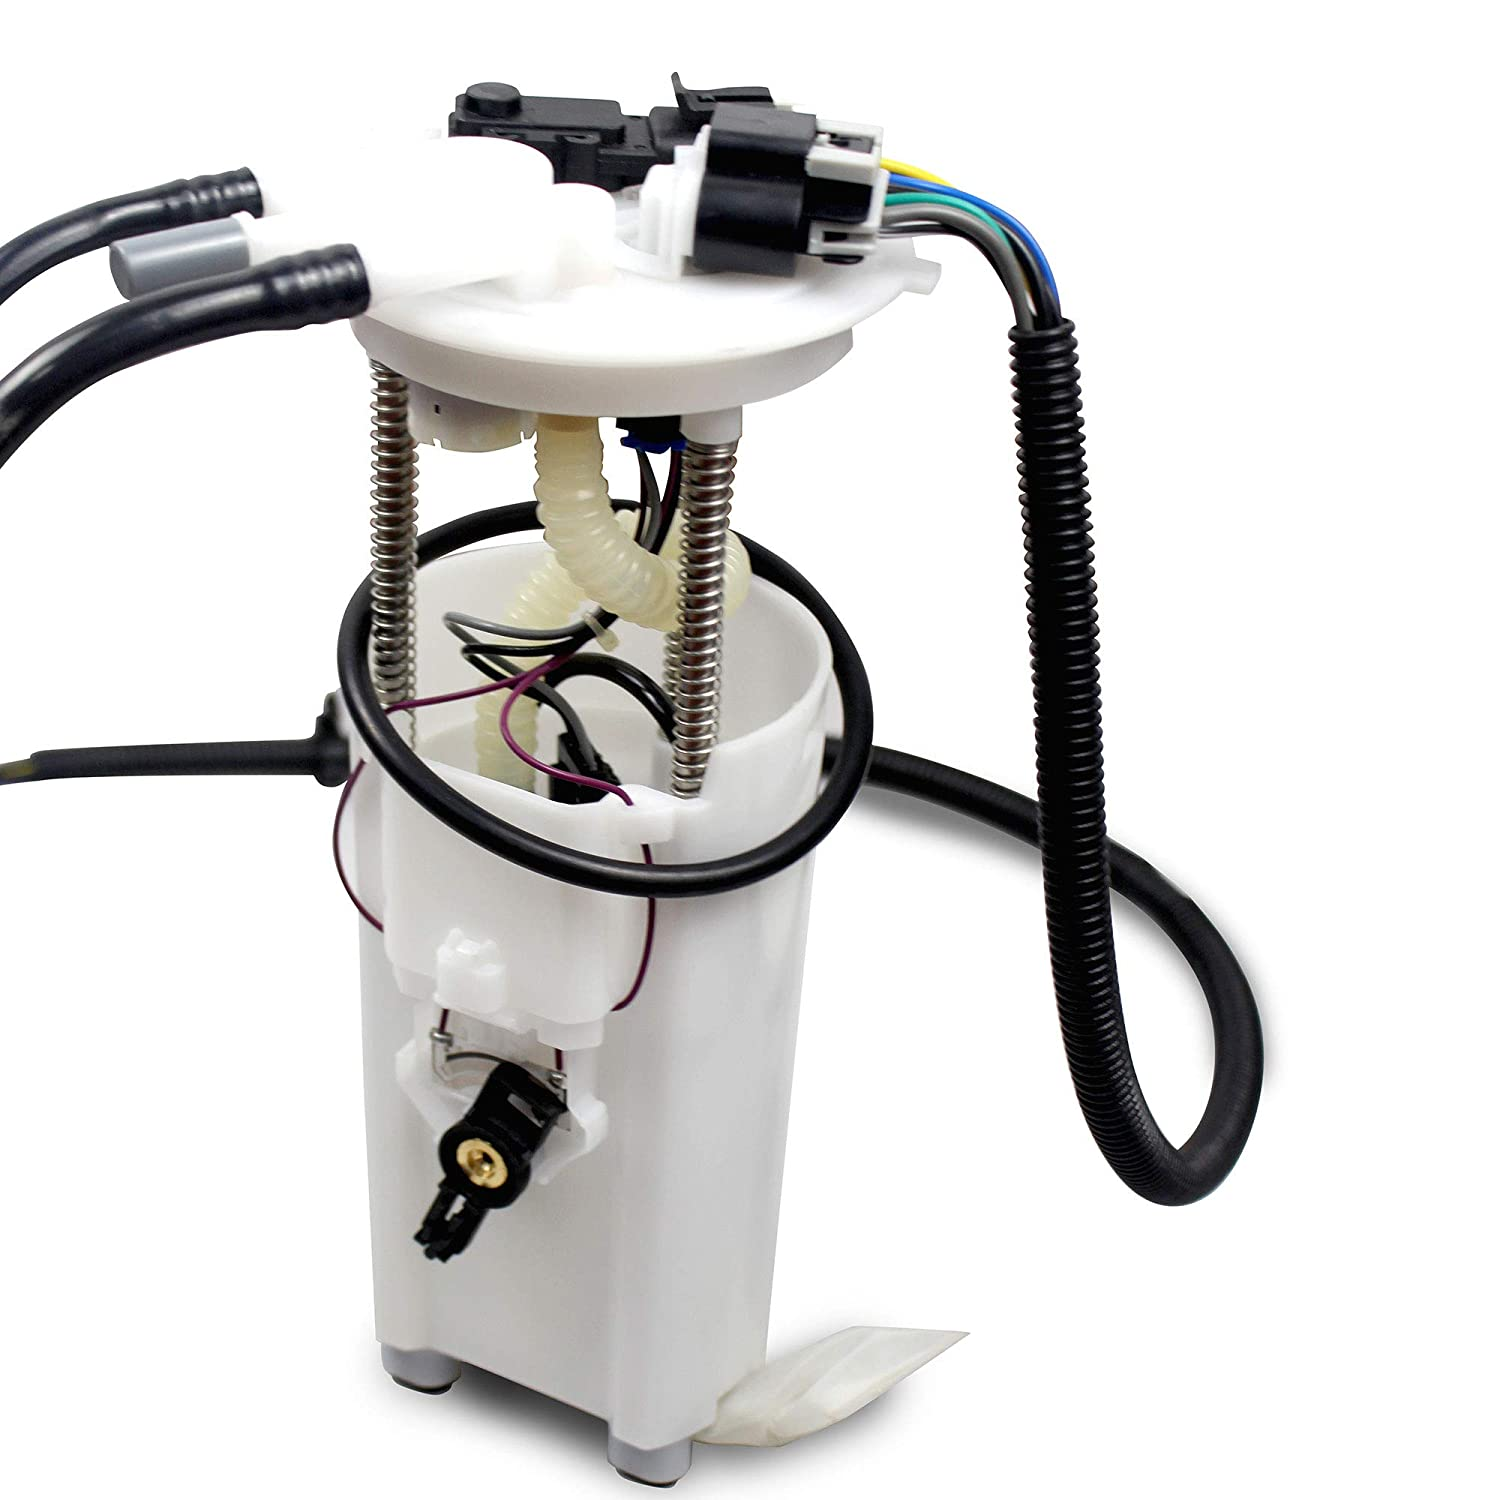 E3507M New Electric Fuel Pump Module Assembly Fits For CHEVROLET CAVALIER MALIBU